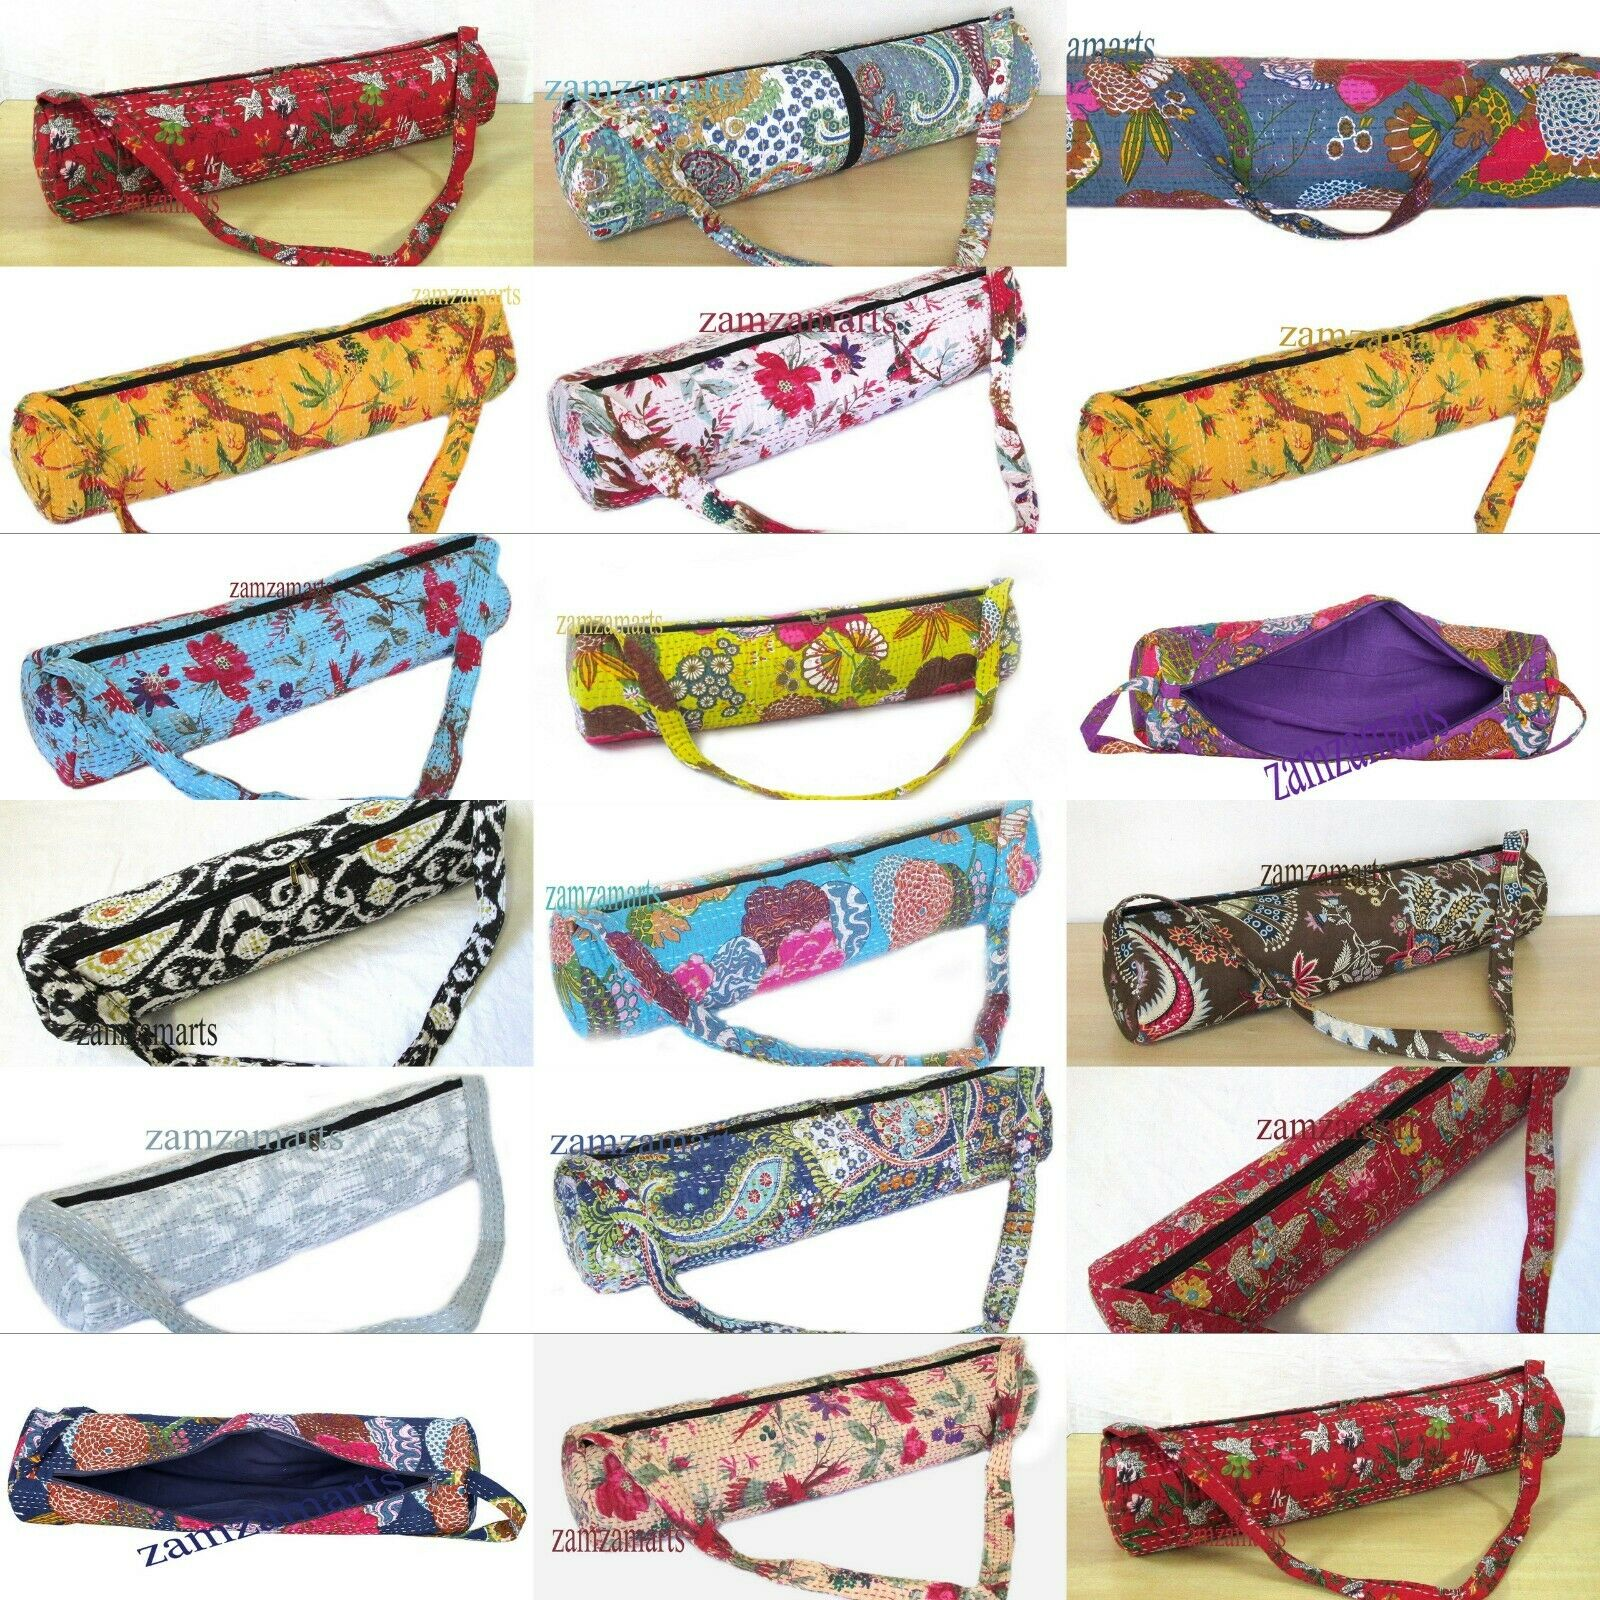 50 PZ. LOTTO INDIAN Handmade Kantha Yoga Mat Carrier Bags con tracolla